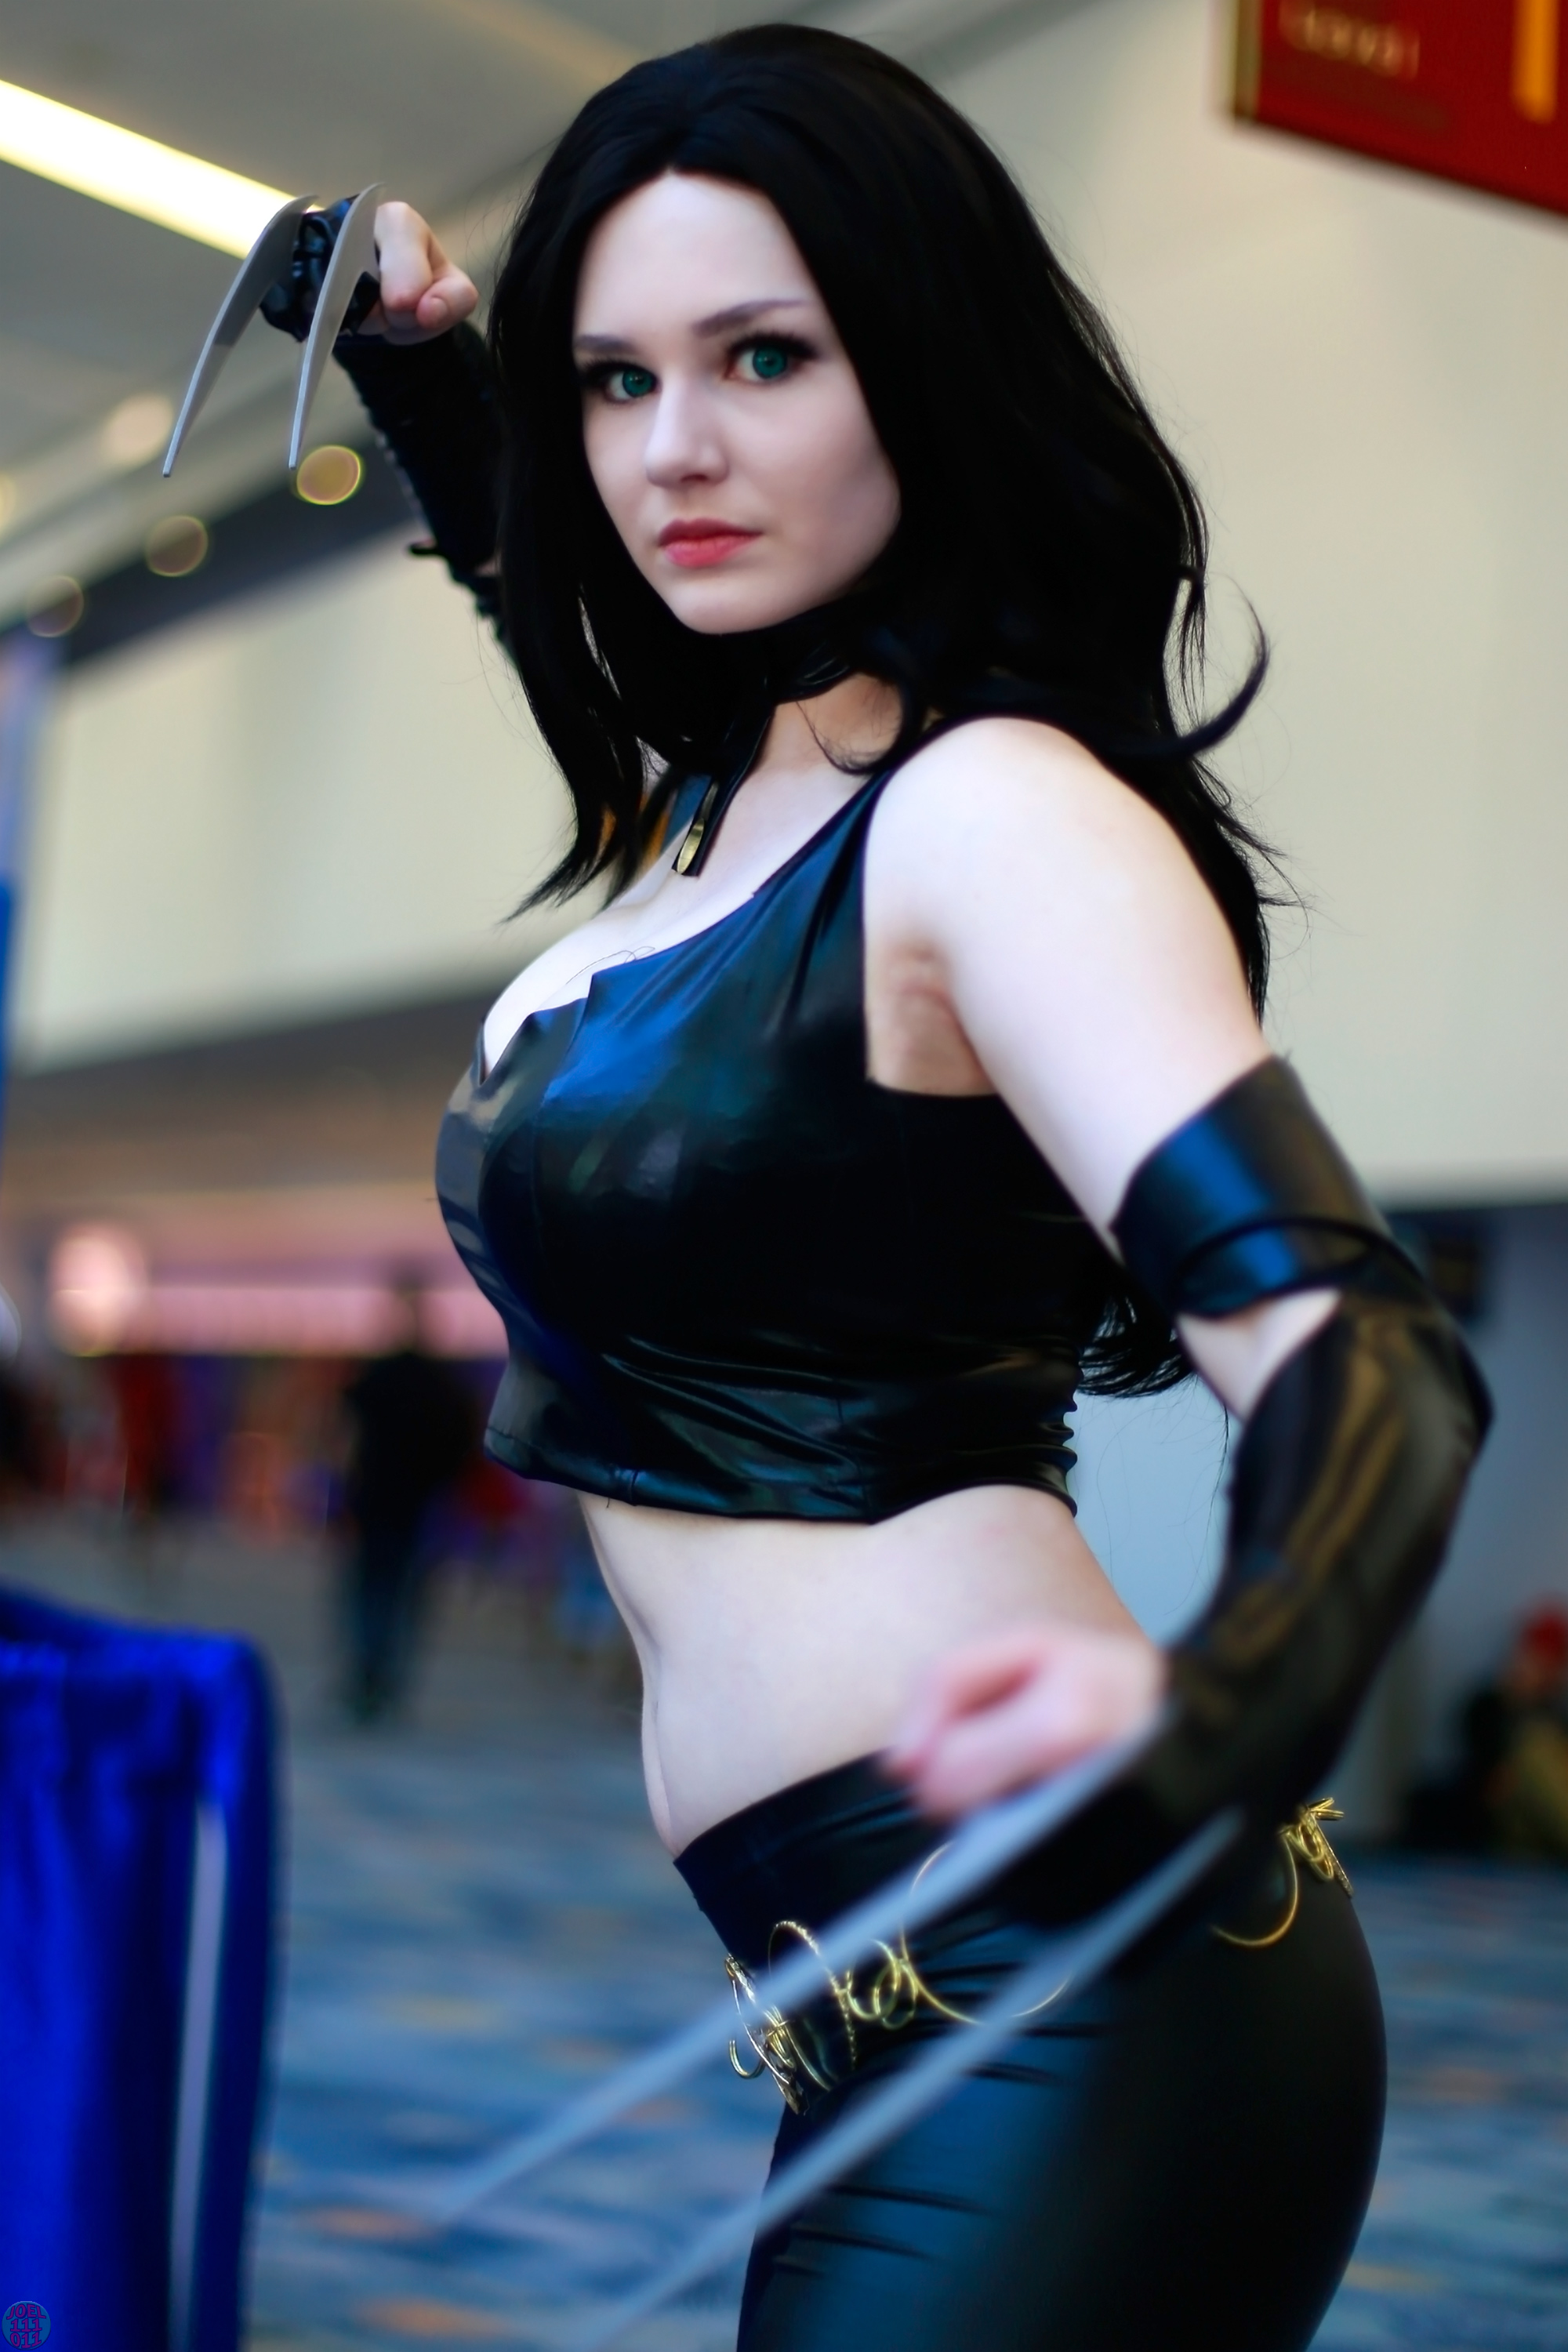 WonderCon 2017 Day 2 Cosplay 32 by Joel111011 on DeviantArt X 23 Cosplay Wallpaper